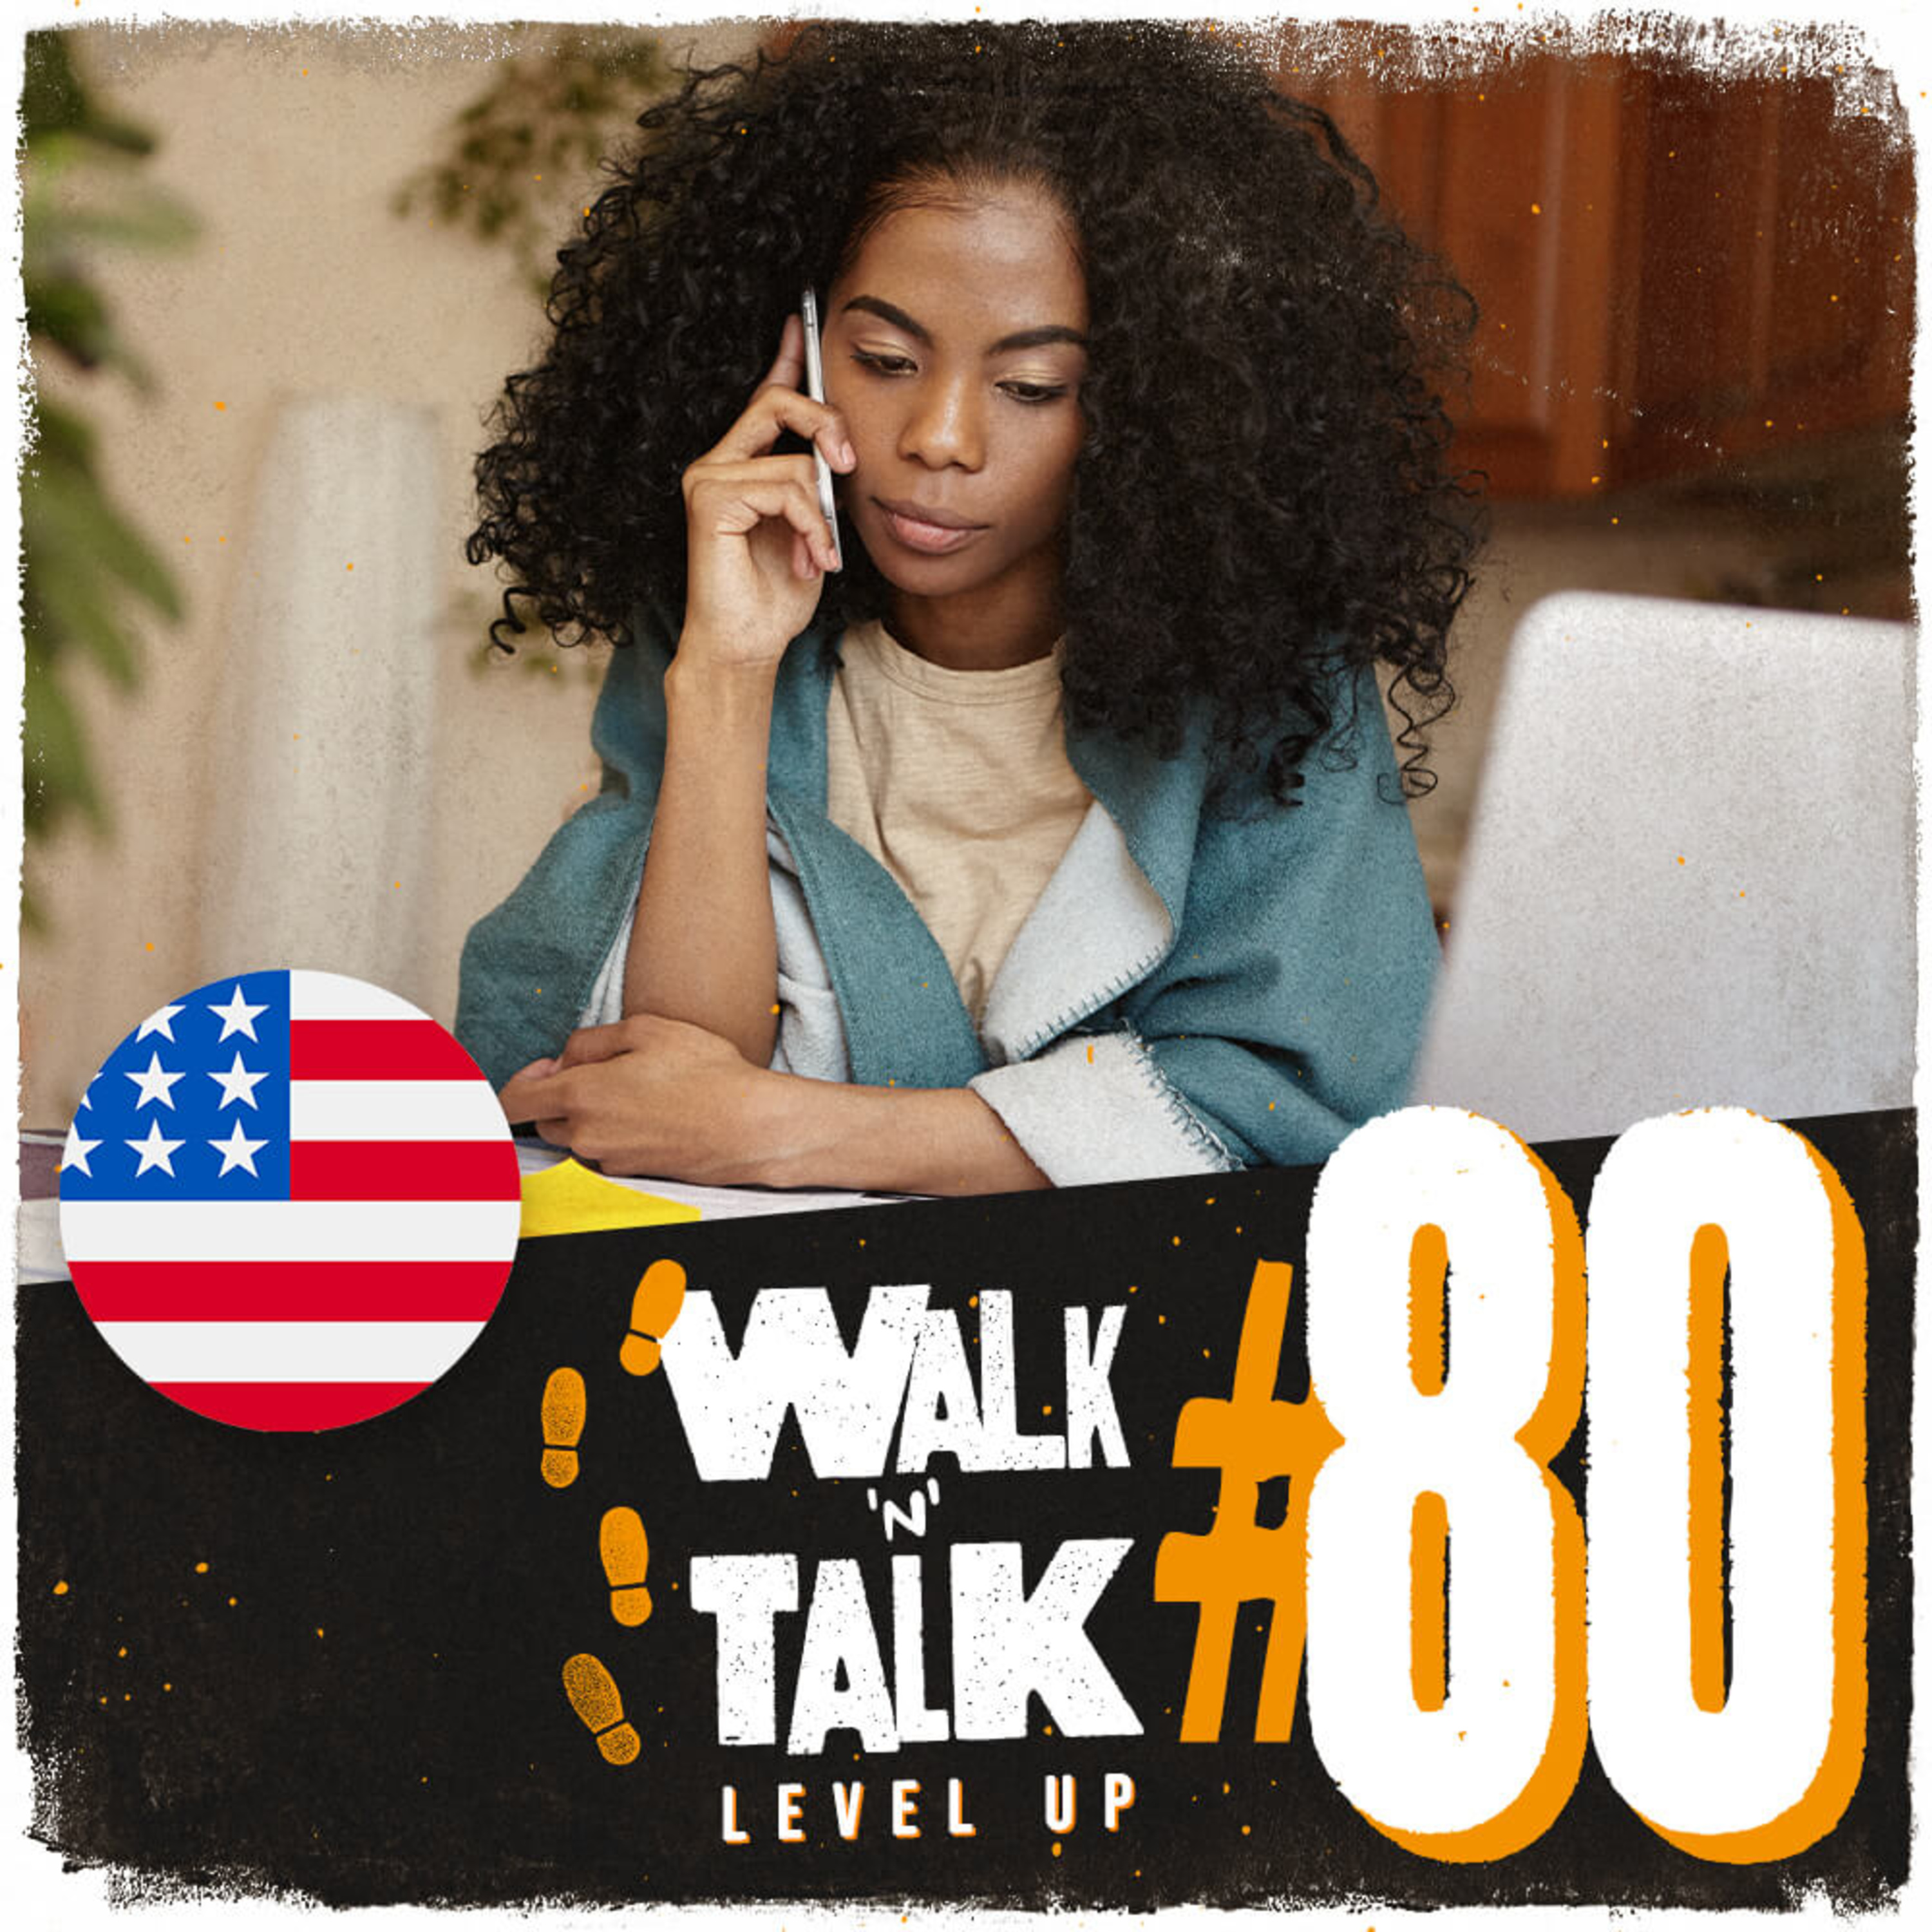 Walk 'n' Talk Level Up #80 - What time is it there?